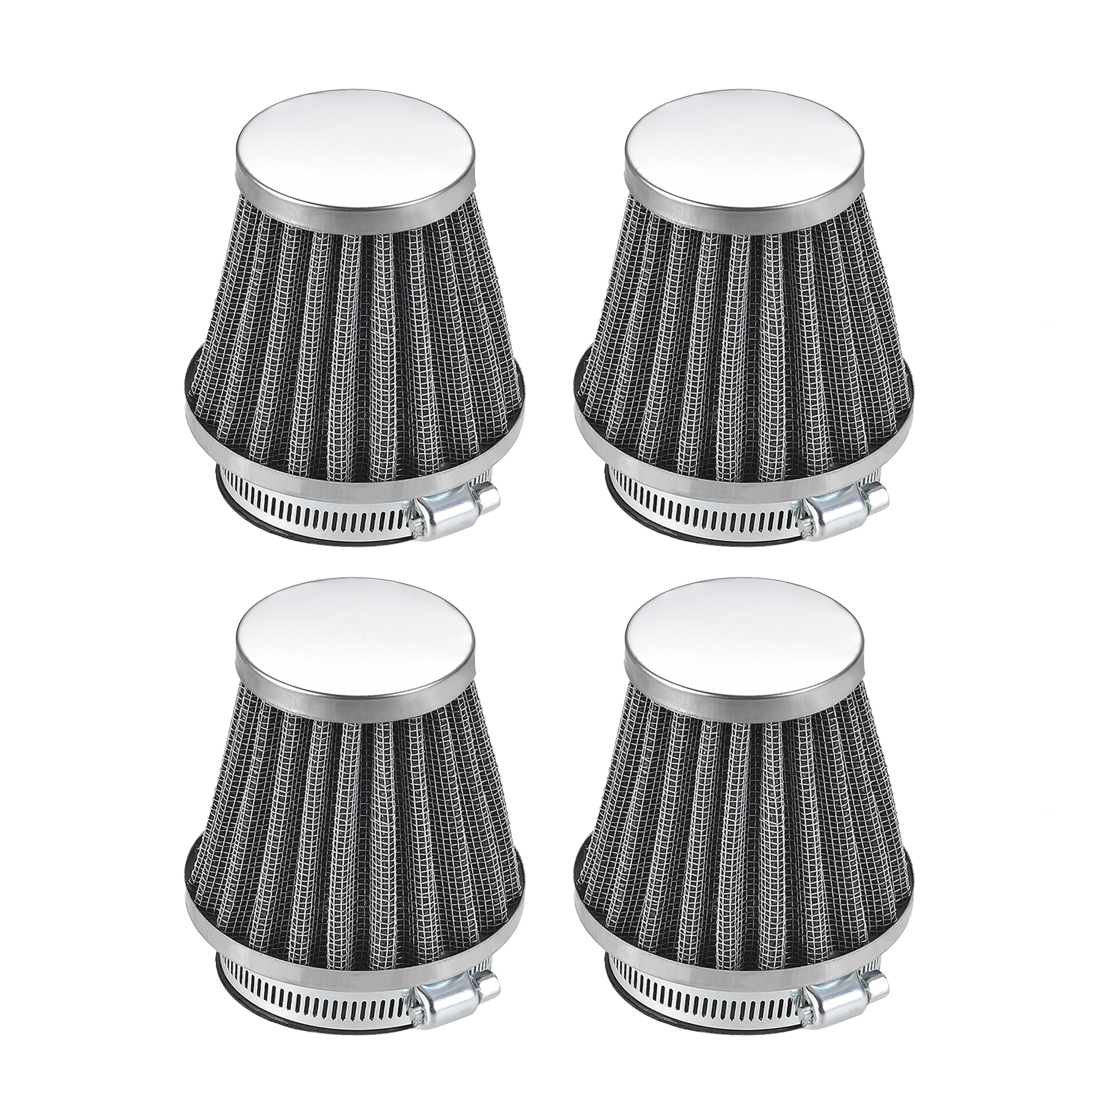 4Pcs 50mm Air Filter for 50cc 110cc 125cc 150cc 200cc Scooter Atv Dirt Bike